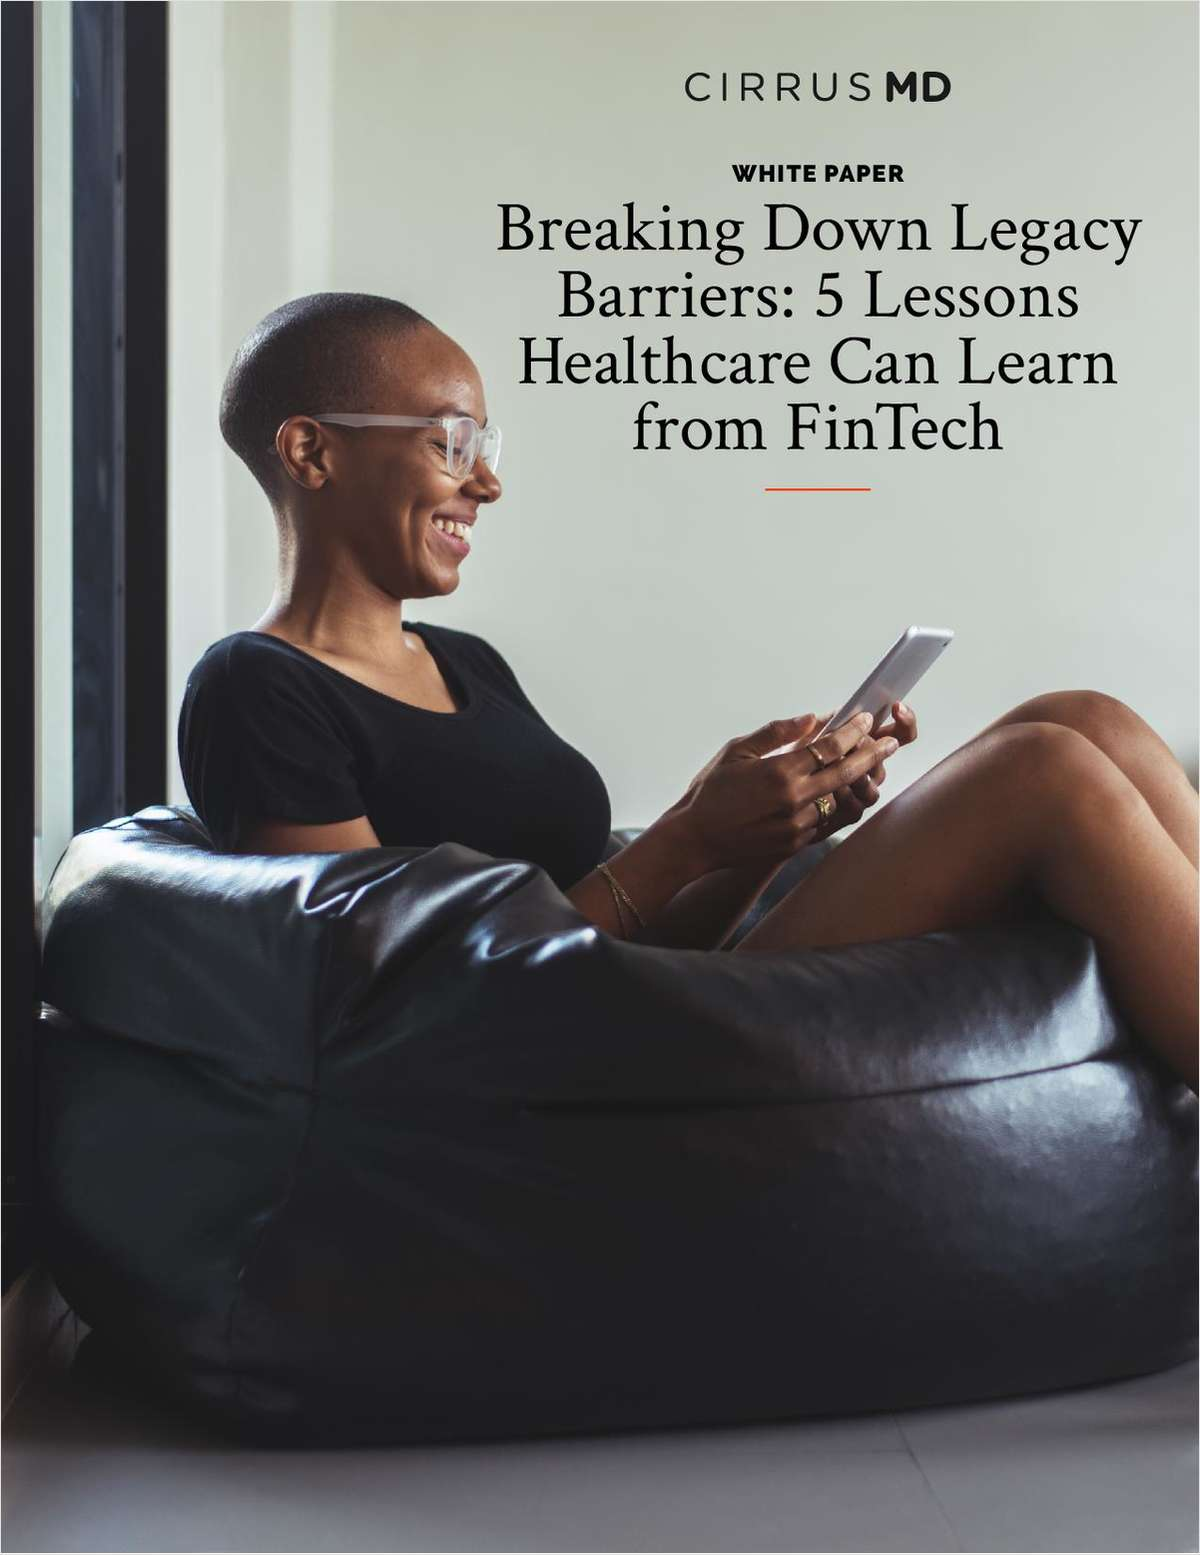 Breaking Down Legacy Barriers: 5 Lessons Healthcare Can Learn from FinTech